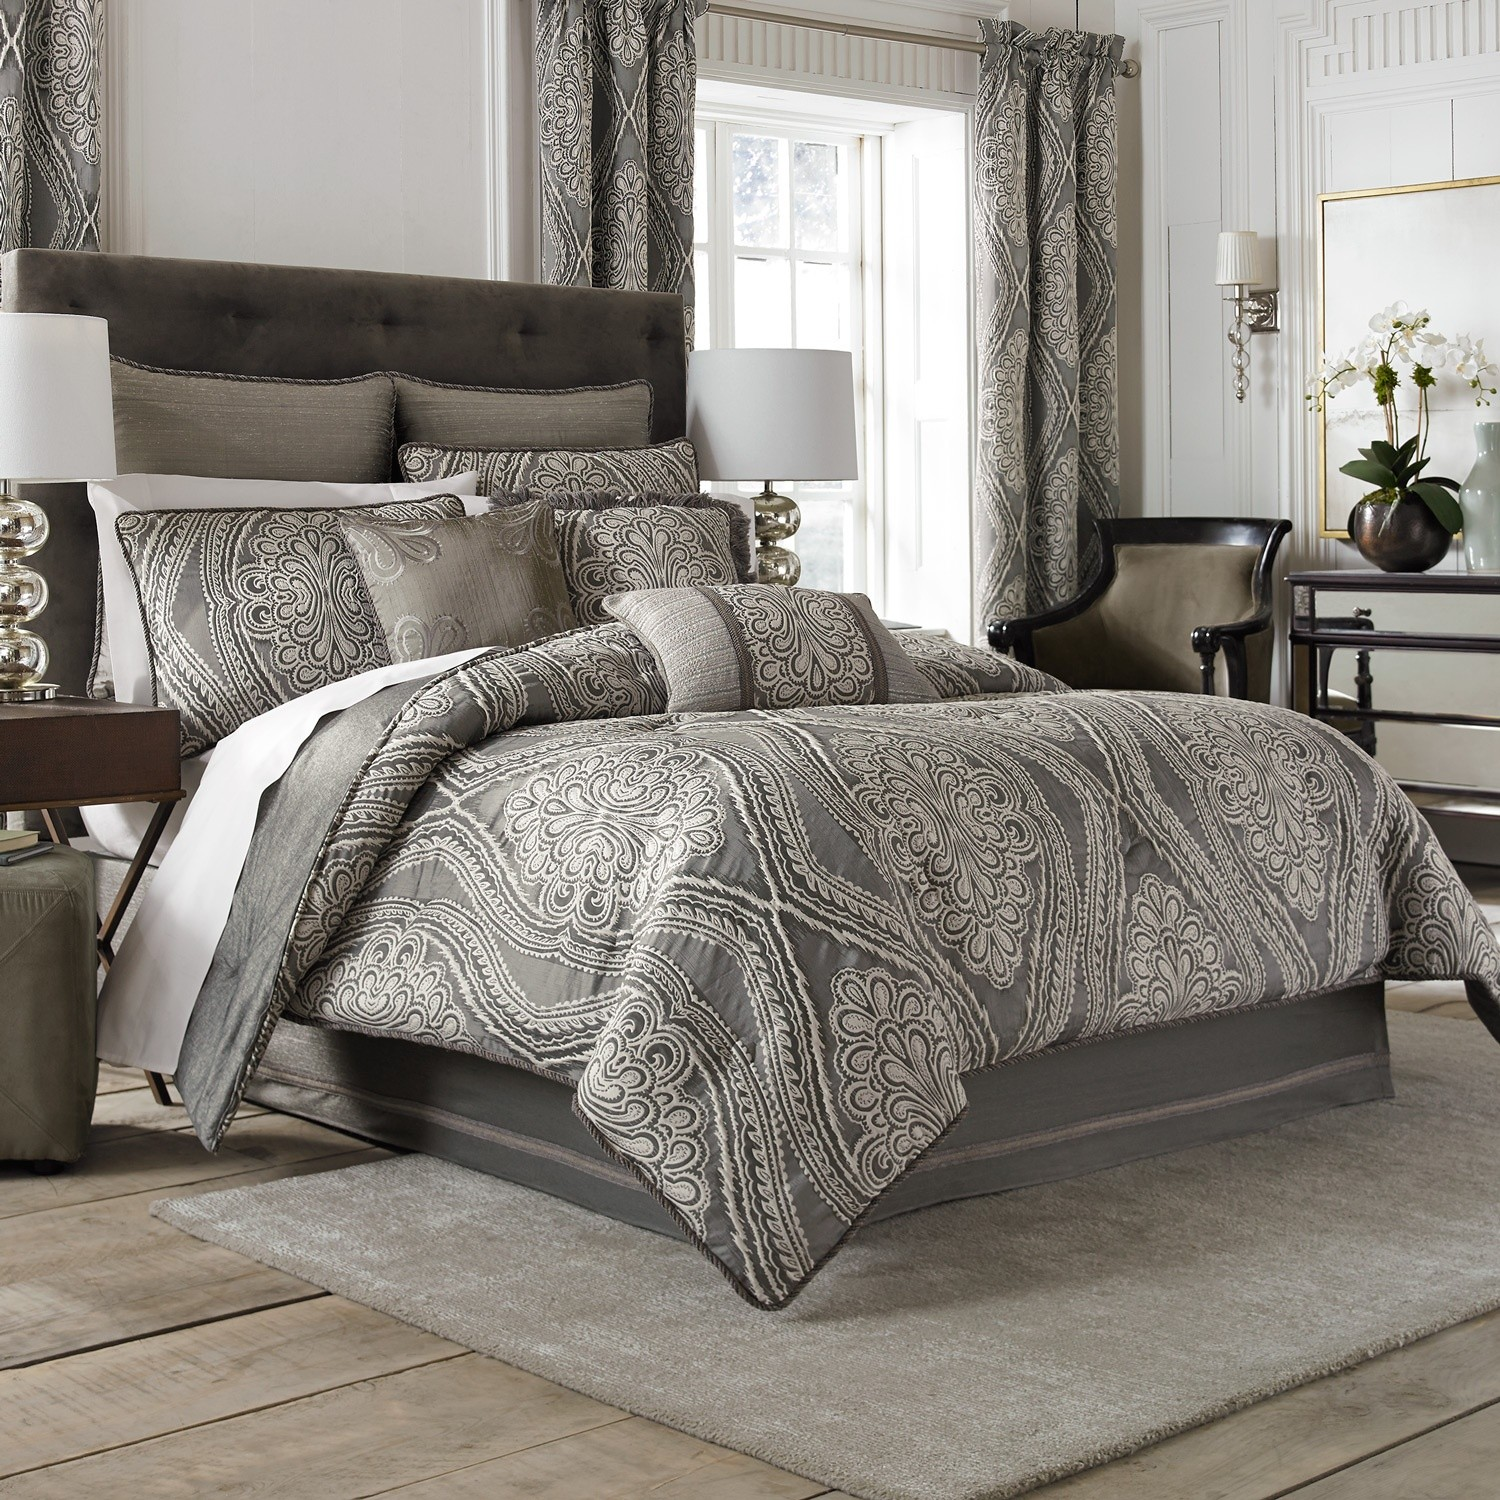 bedroom-grey-pattern-linen-cotton-comforter-and-curtains-combined-grey-fur-rugs-miraculous-bedroom-comforter-and-curtain-sets-design-ideas